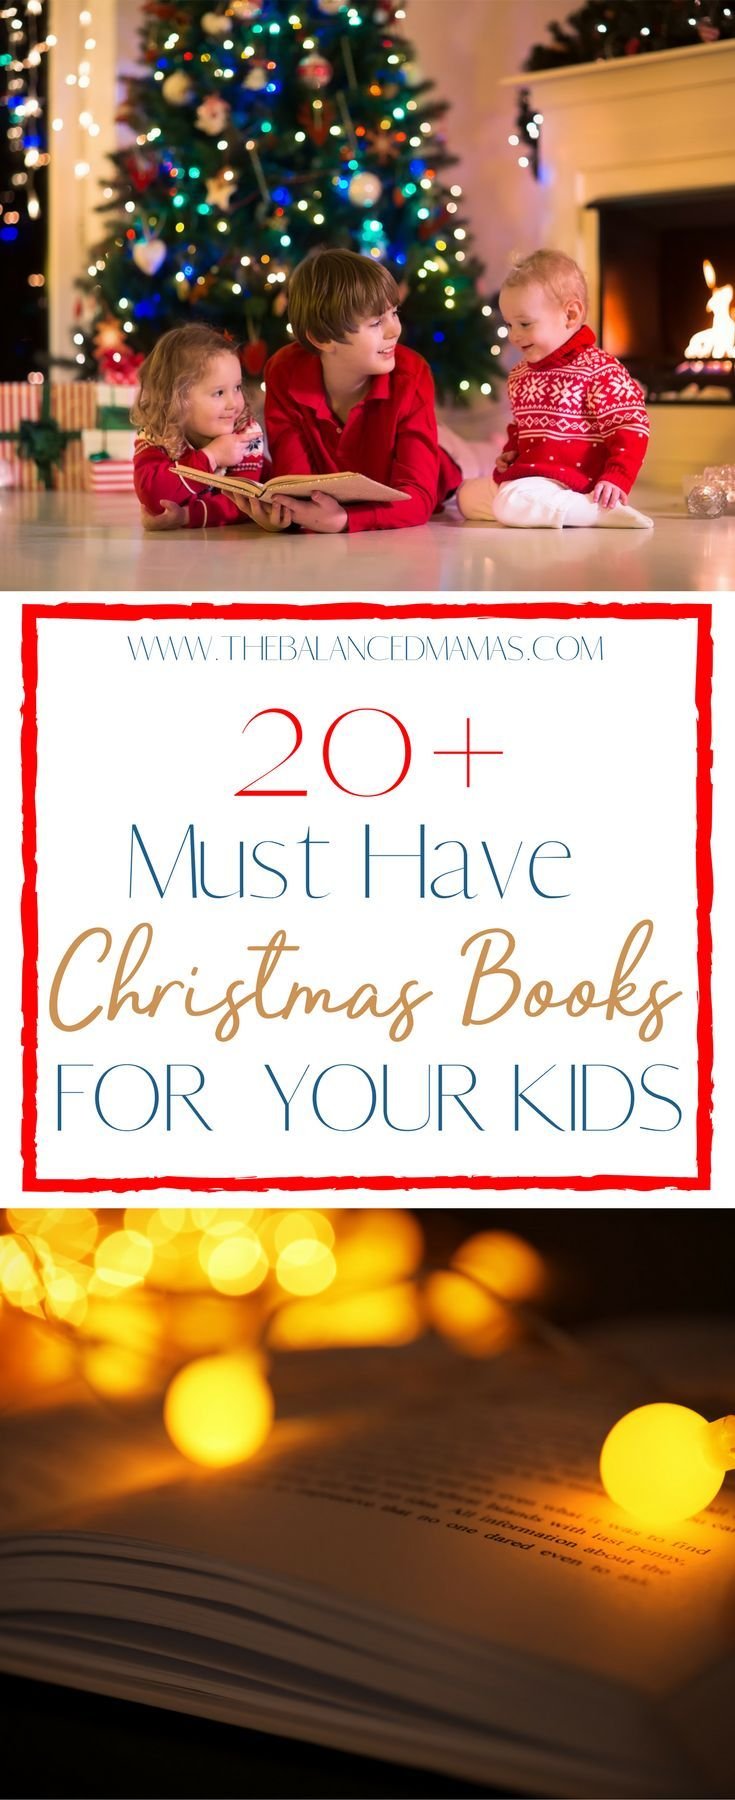 The holidays are a perfect time to create some new family Christmas traditions. What better way than picking up a few Christmas books for kids and start making memories today! Family Christmas traditions to start | Family Christmas traditions for Kids | Christmas books for kids toddlers | Christmas books for kids activities | Christmas books for kids holiday traditions | Best Christmas books for kids via @thebalancedmamas